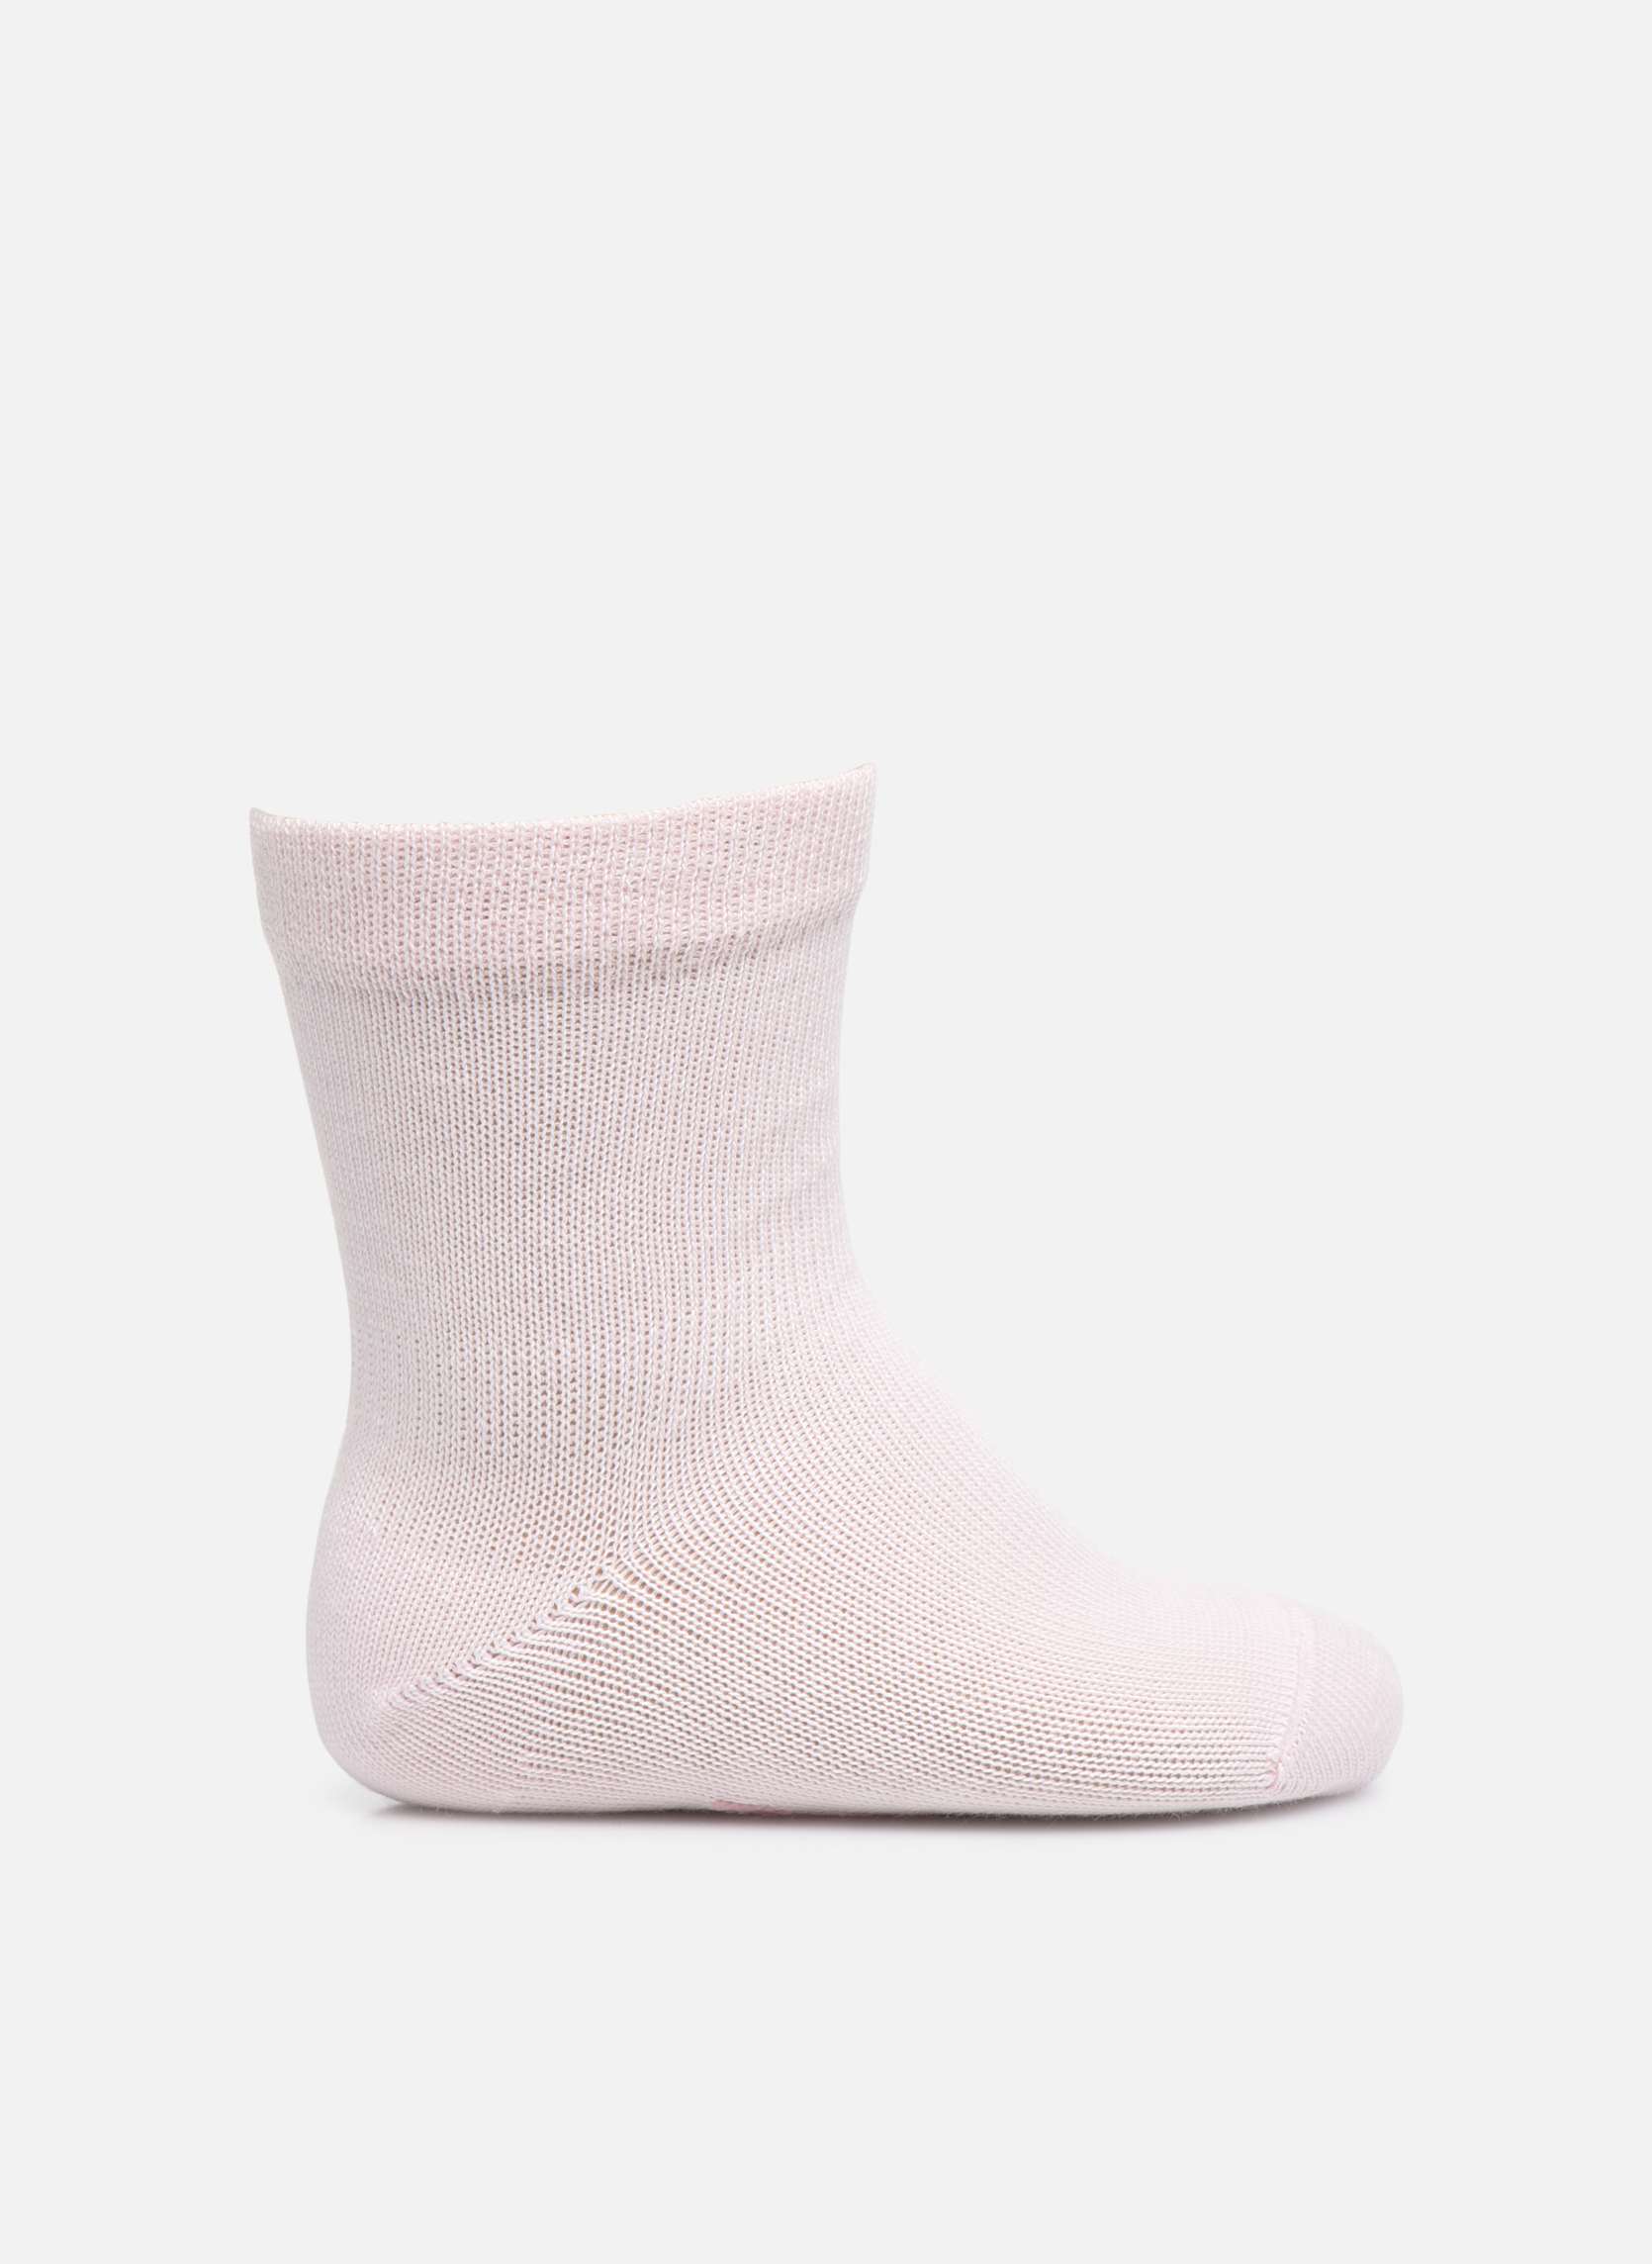 Chaussettes SENSITIVE 8900 rose